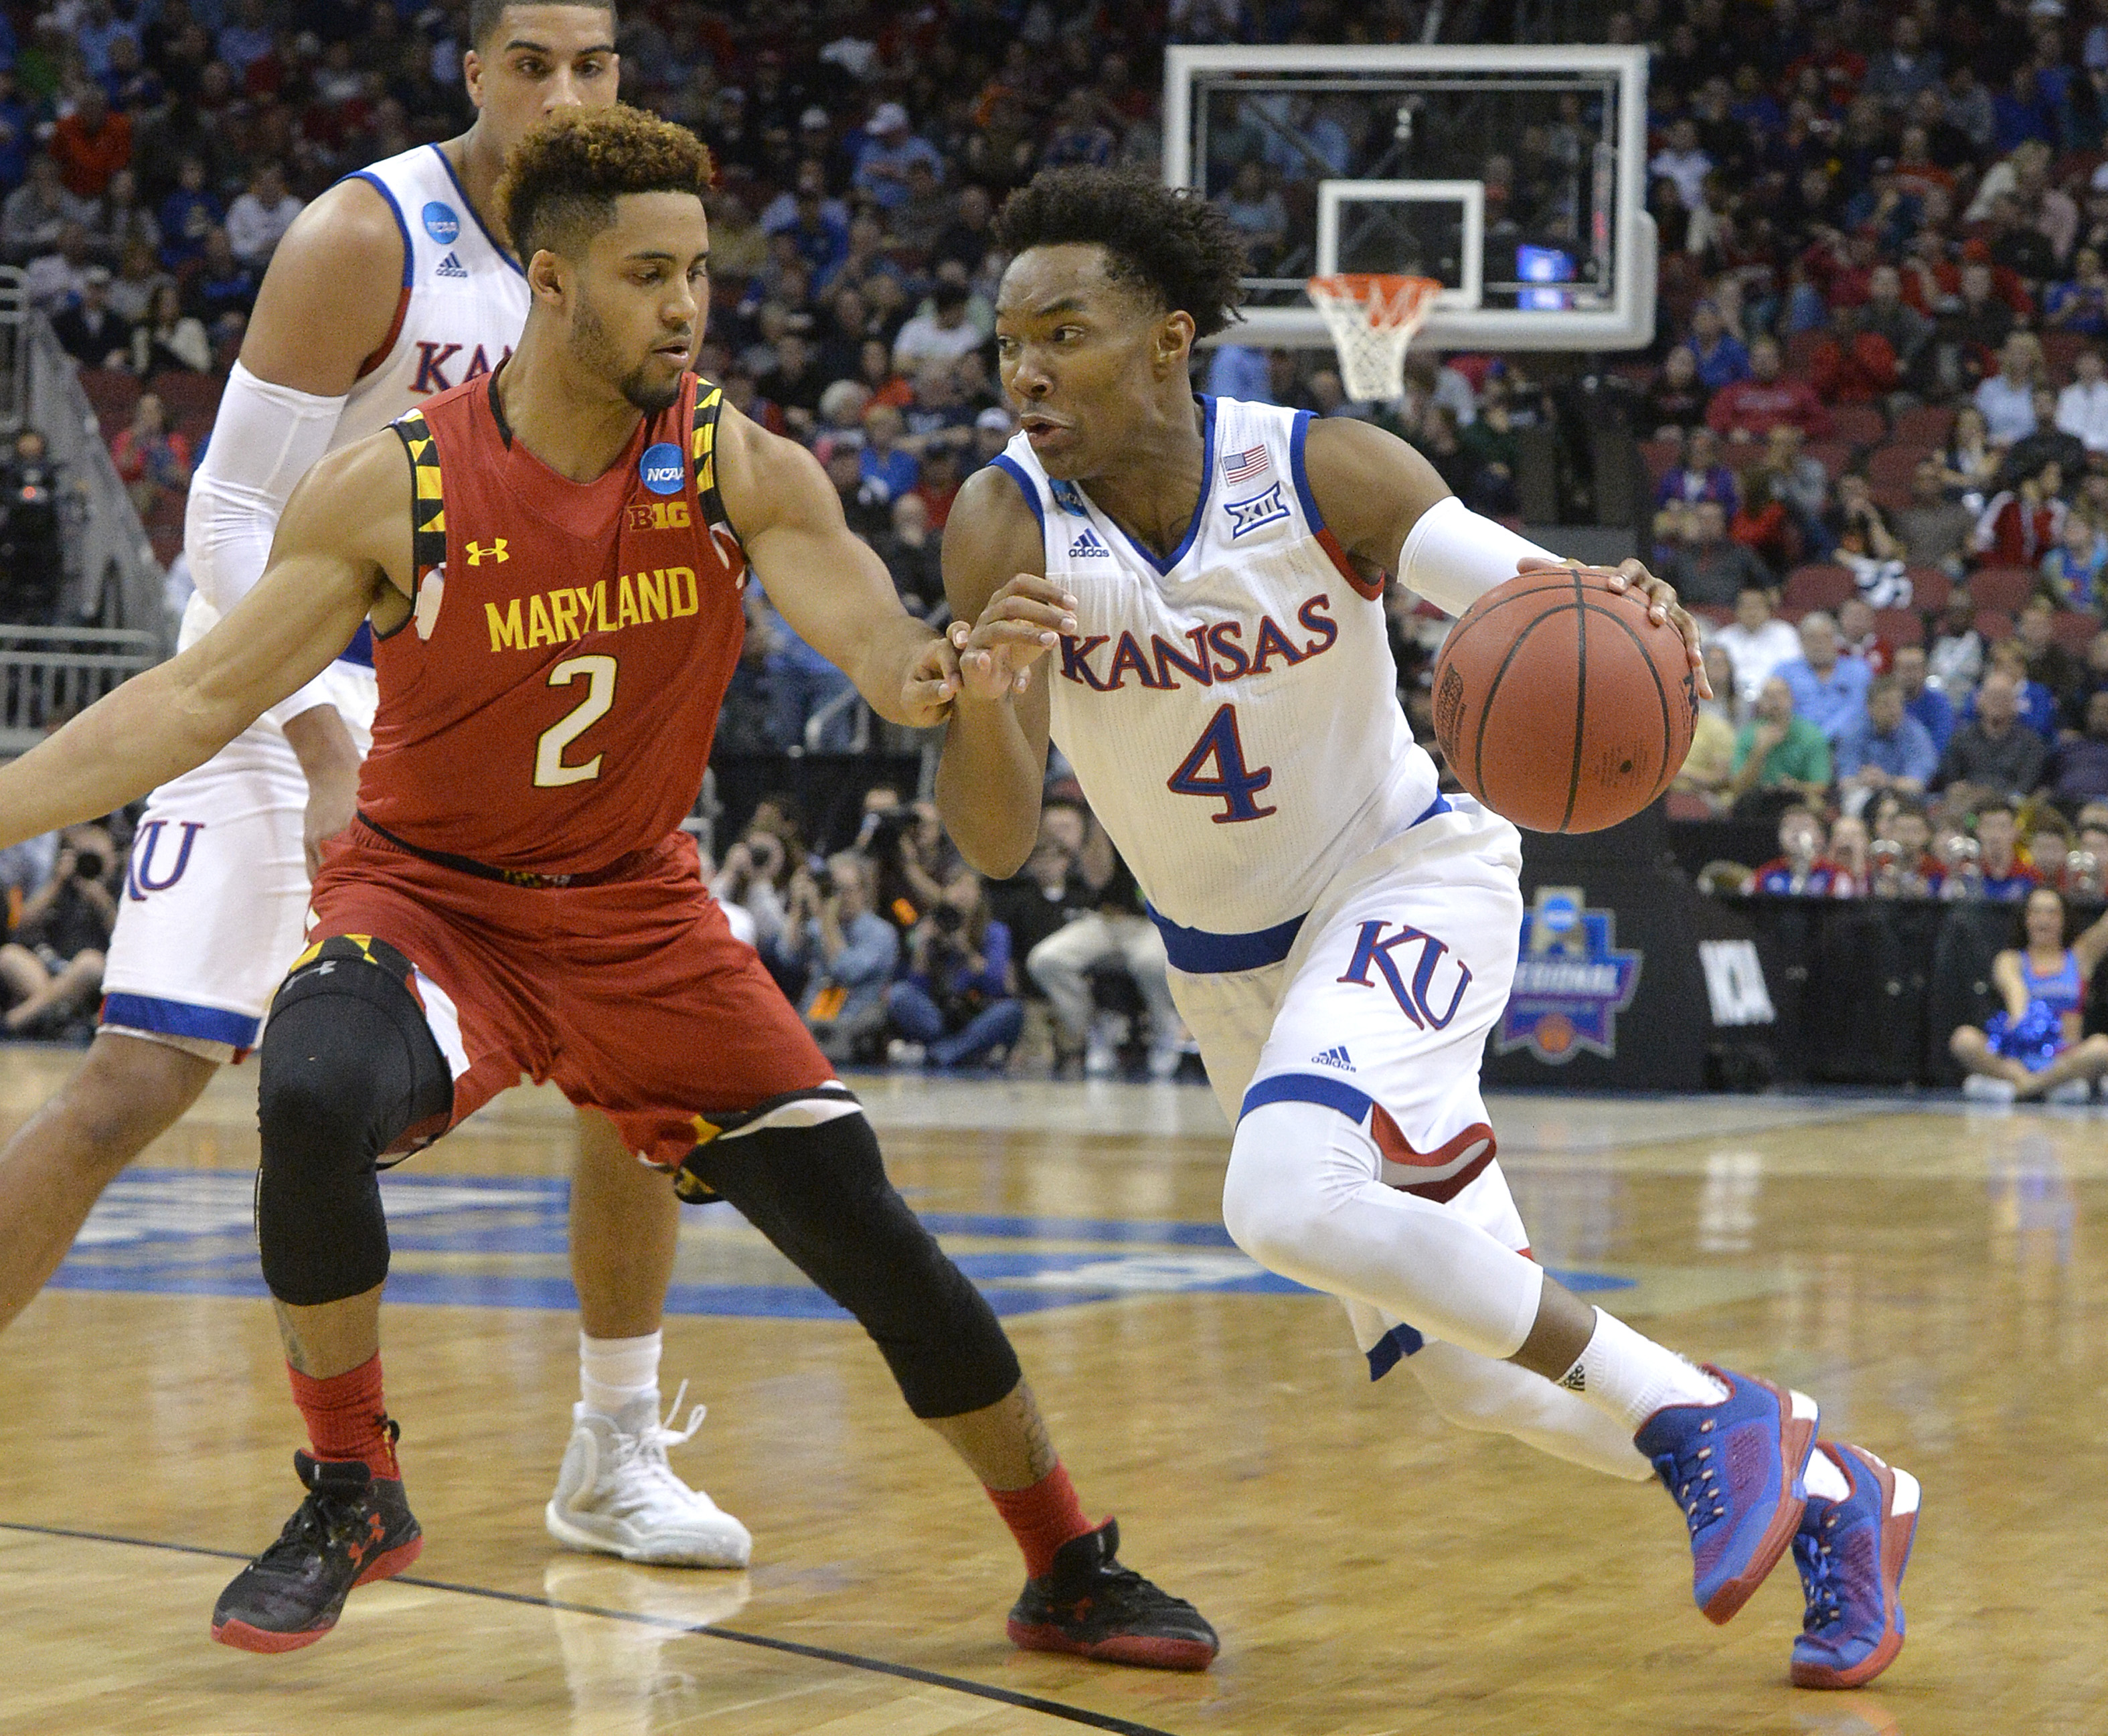 Terps eliminated in Sweet 16 loss to Kansas, 79-63